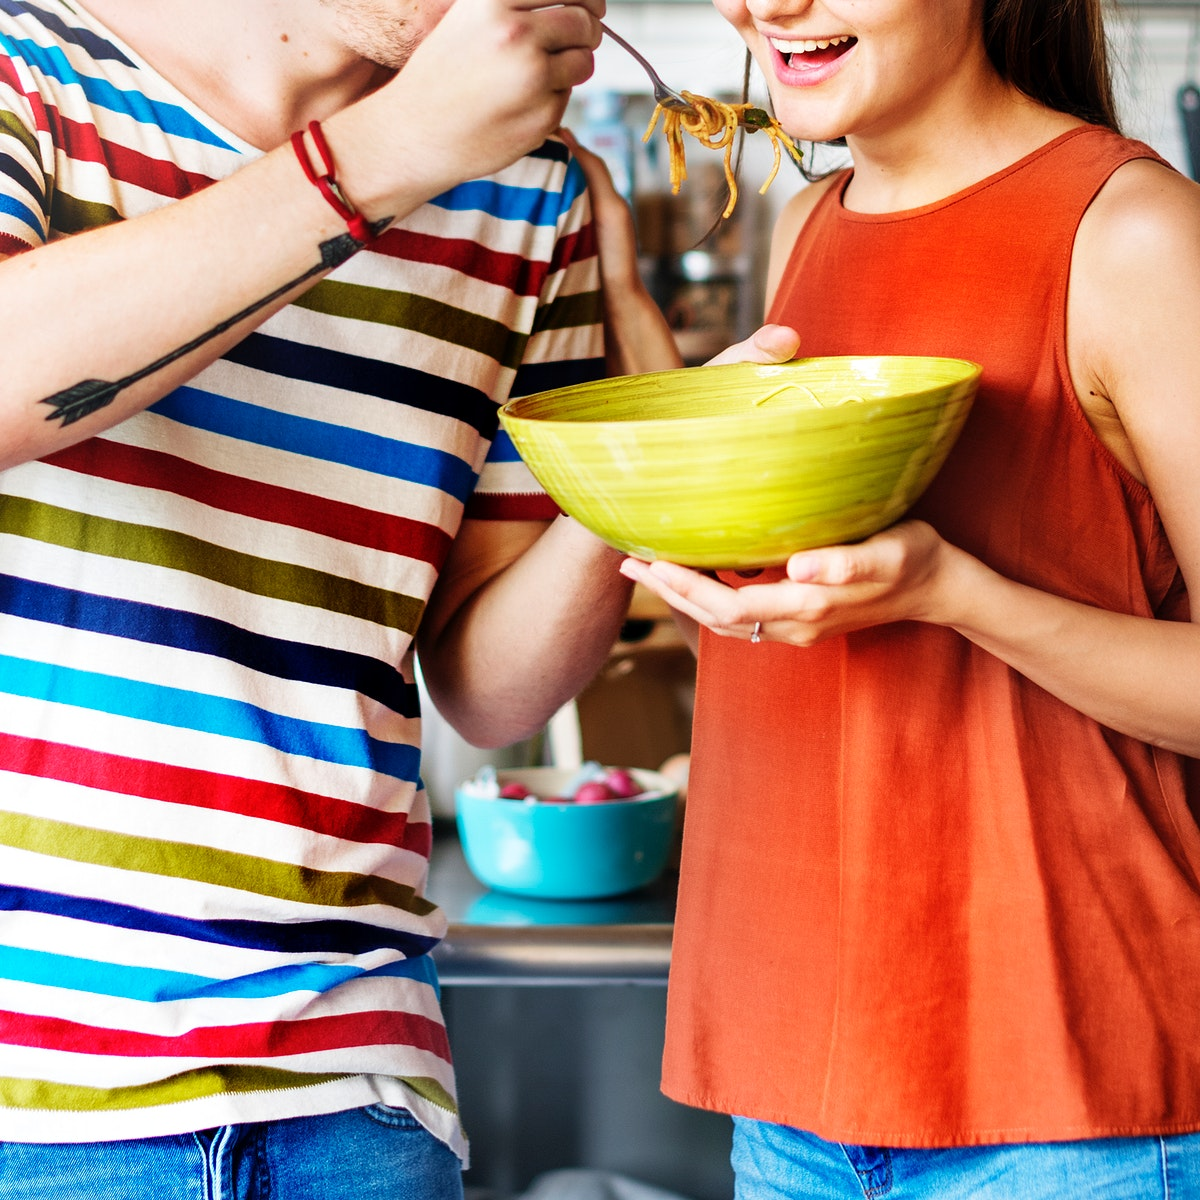 Couple sharing eating a bowl of spaghetti